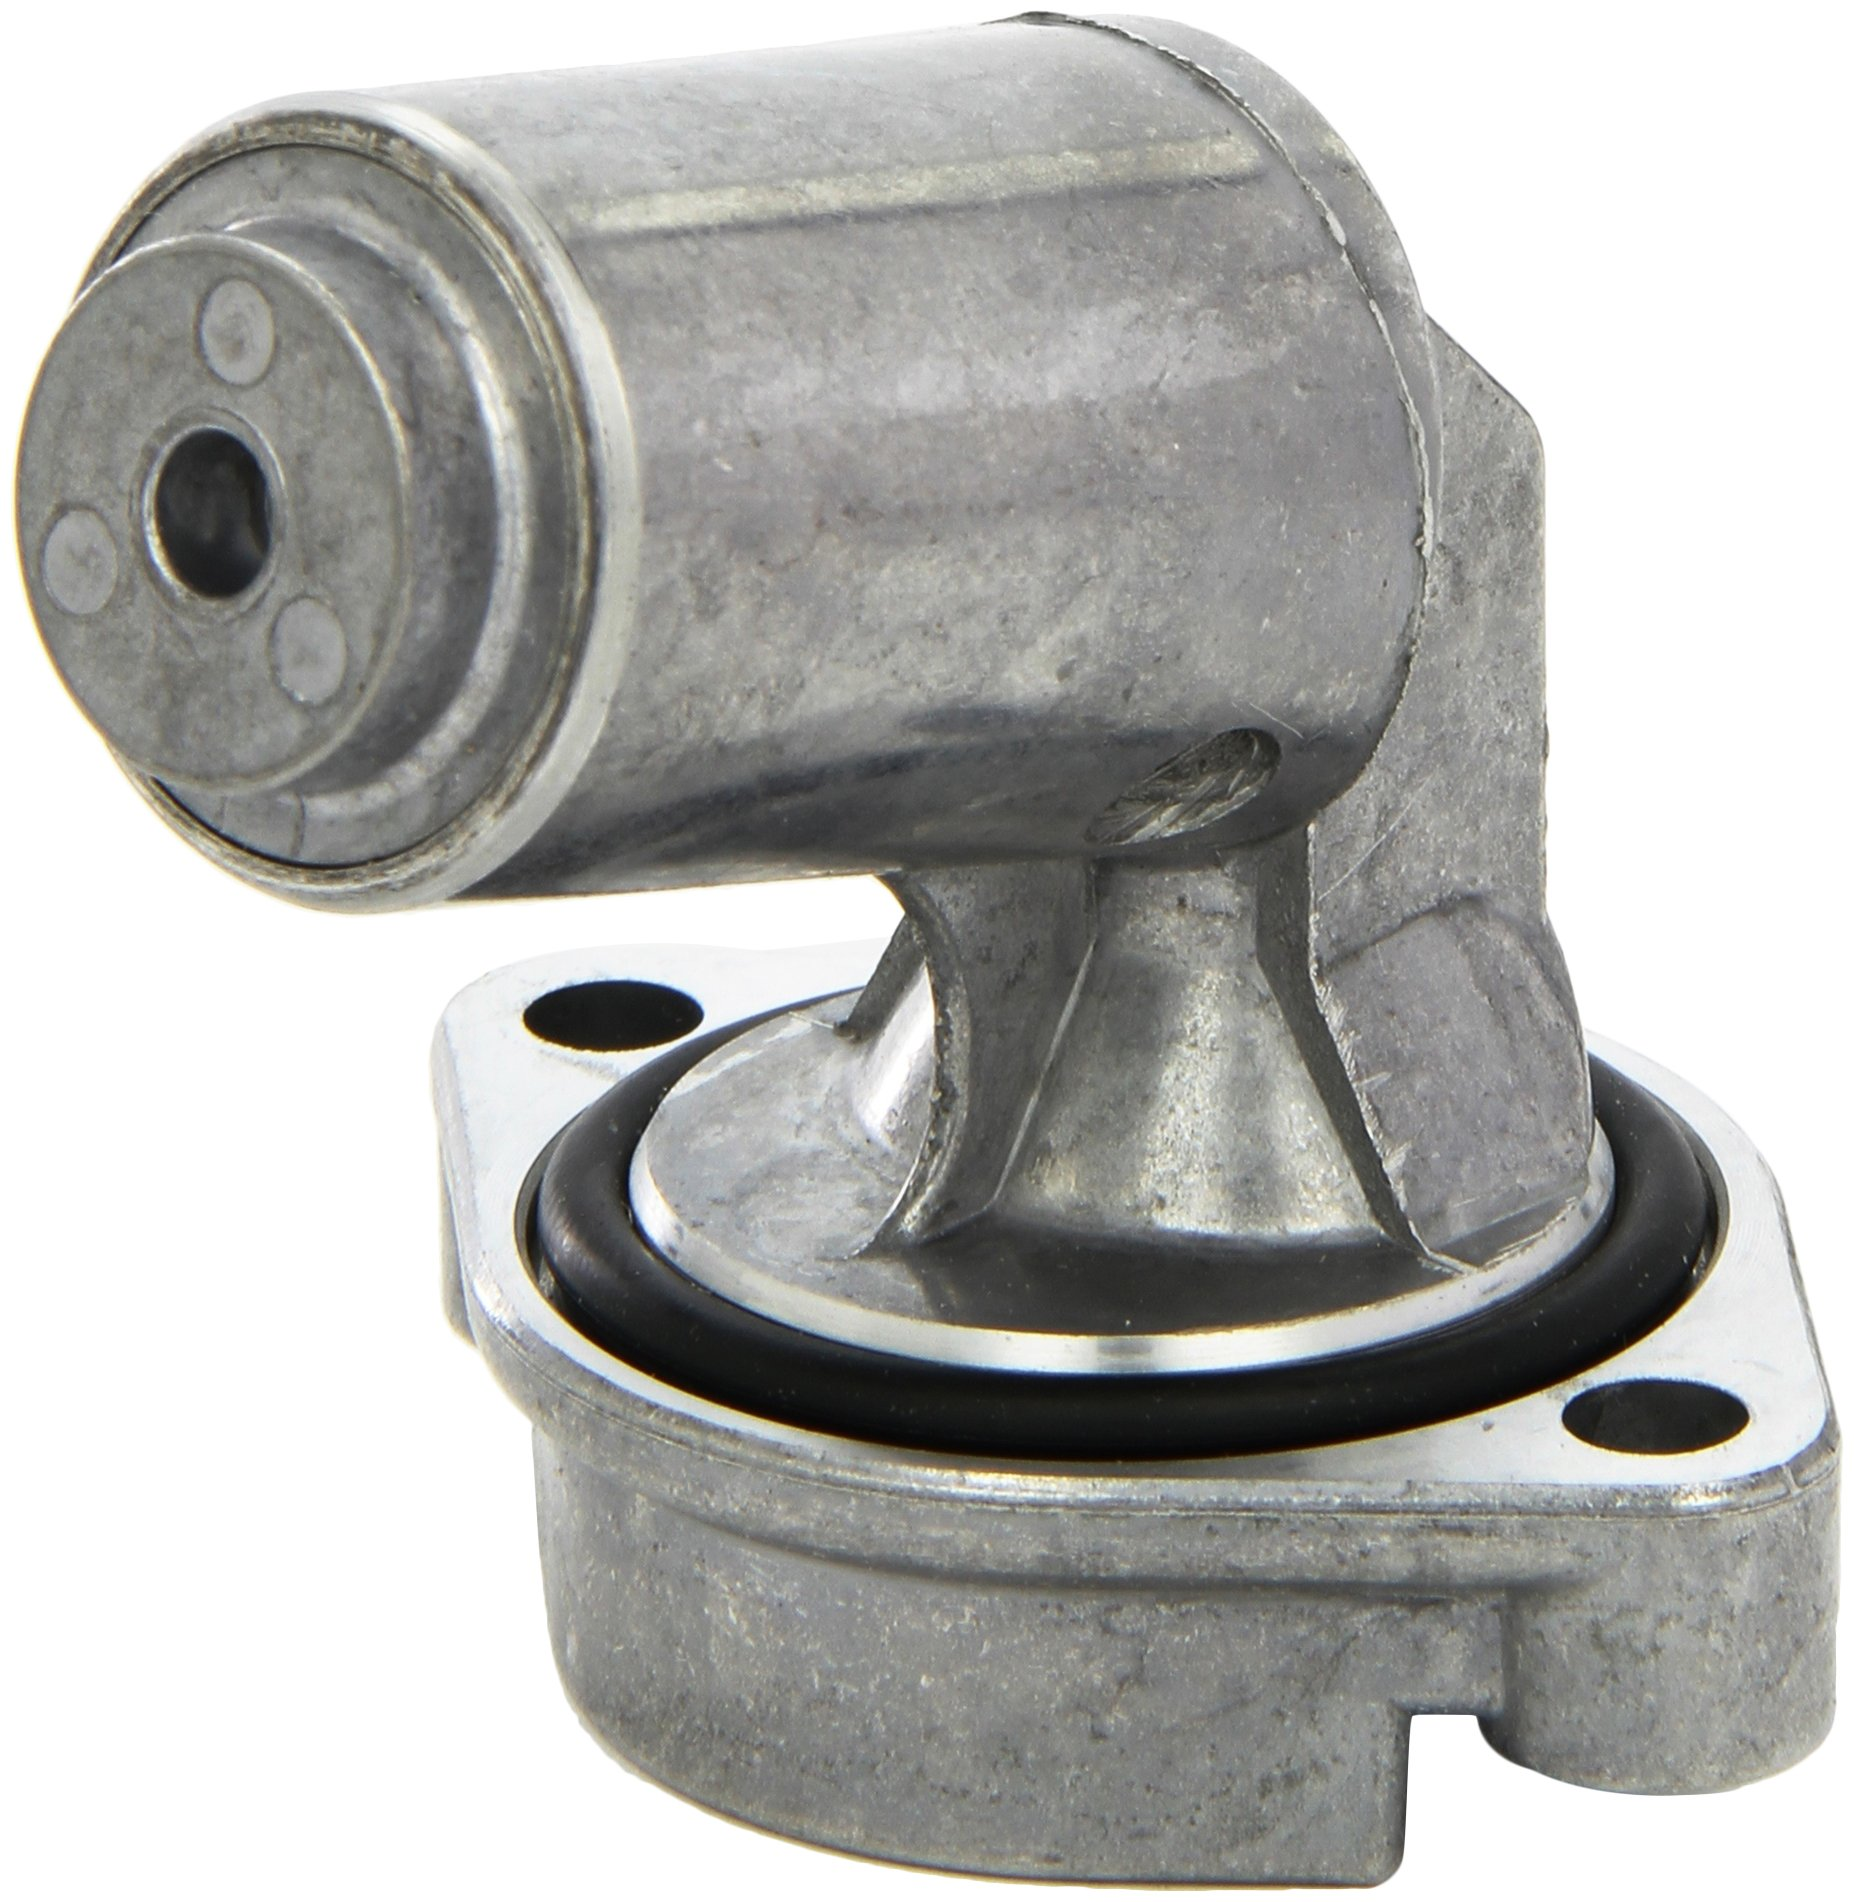 Hella 004592021 OIL LEVEL SENSOR